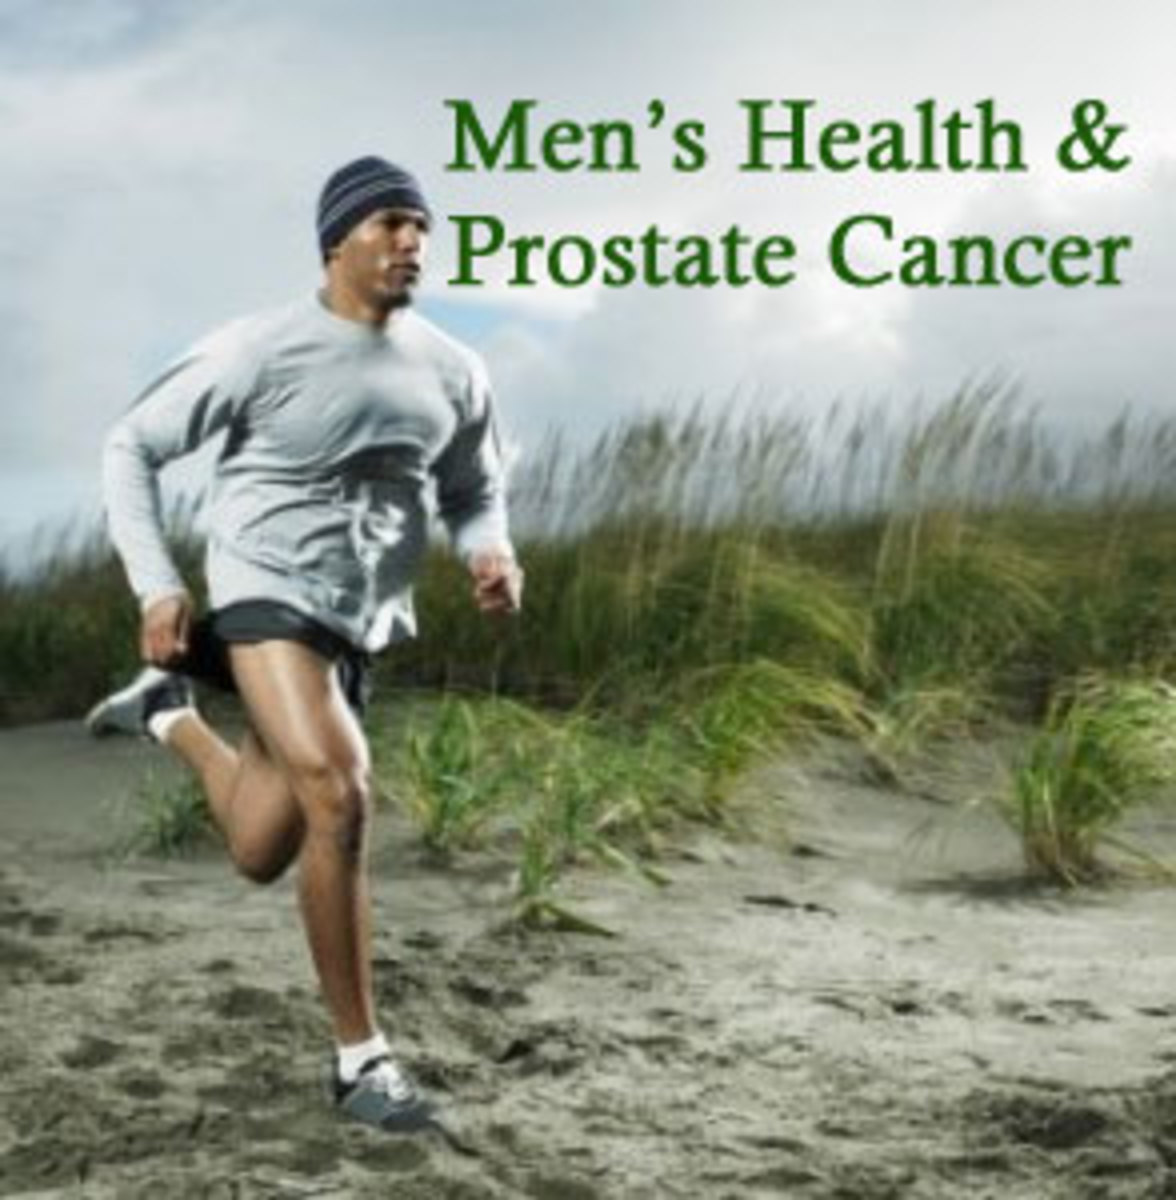 There may be 5 different types of prostate cancer.